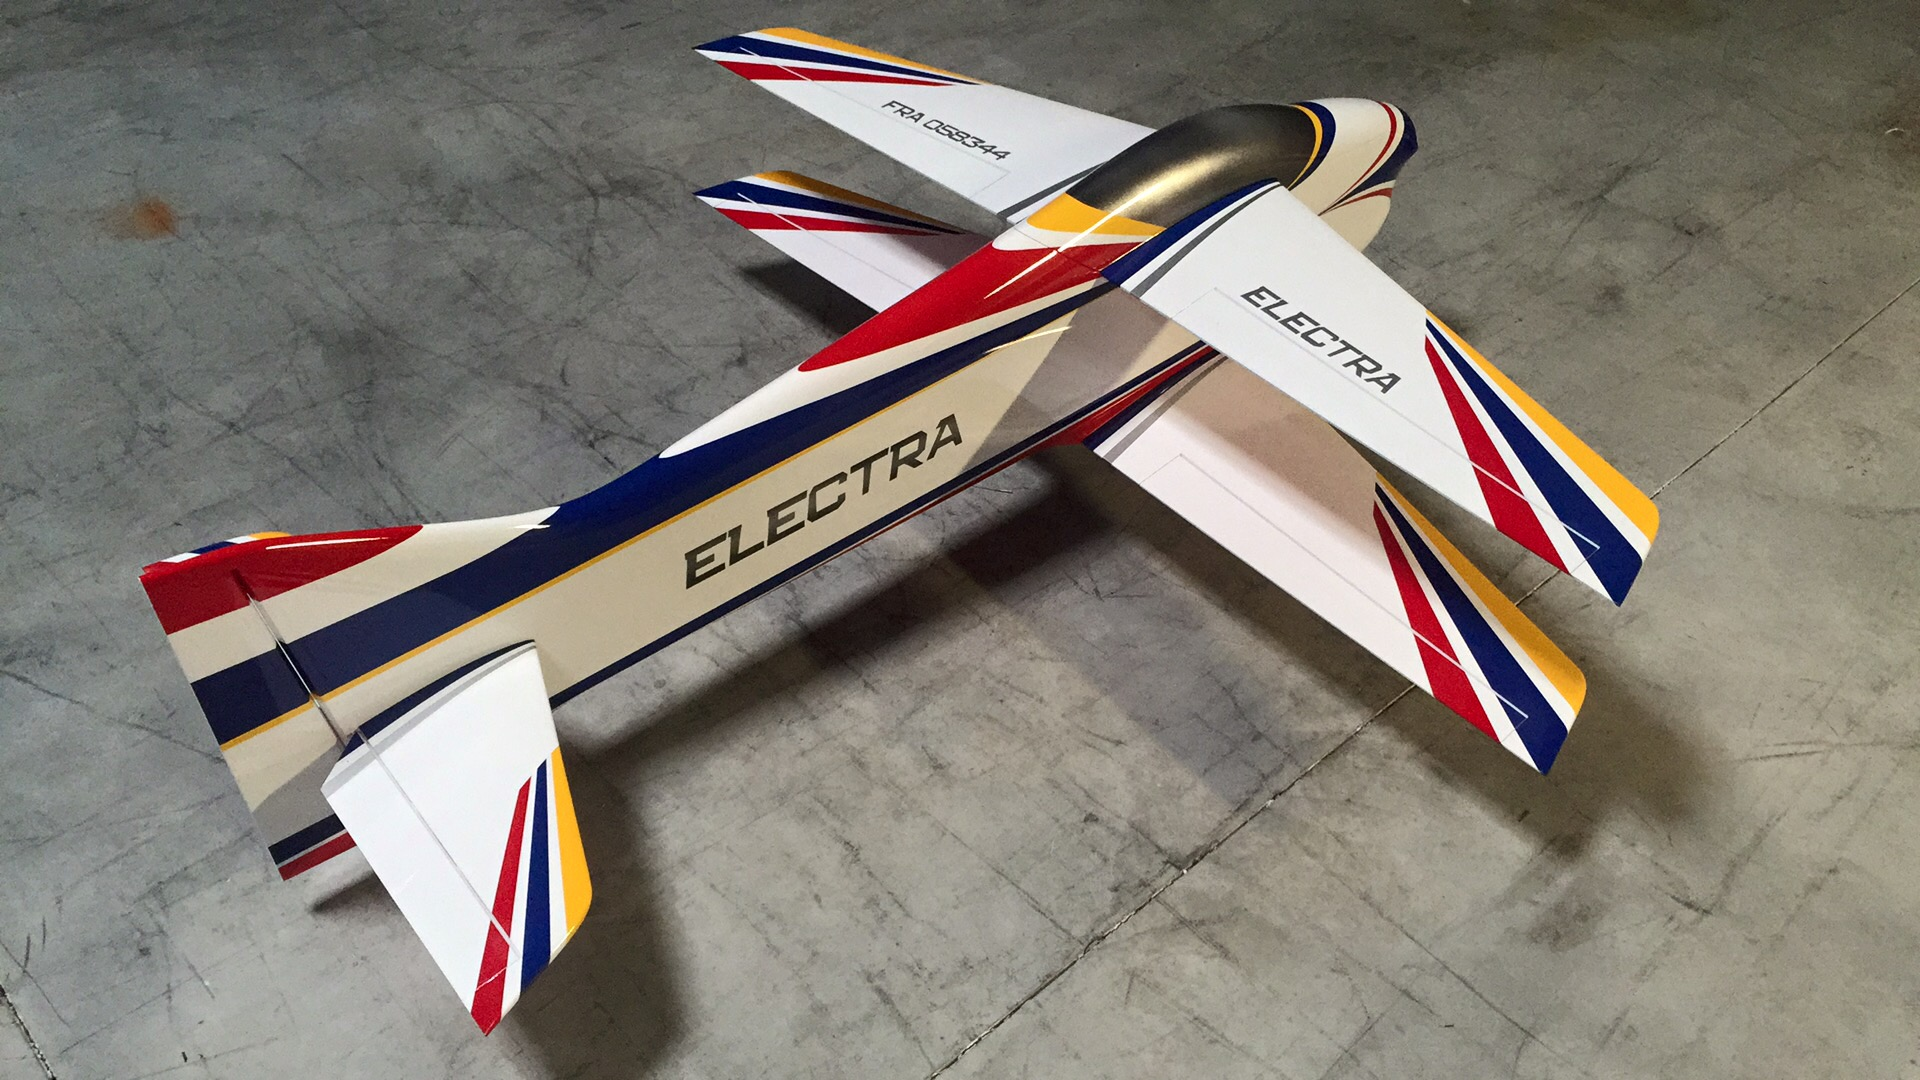 Click image for larger version  Name:electra05.jpg Views:566 Size:526.8 KB ID:2156506